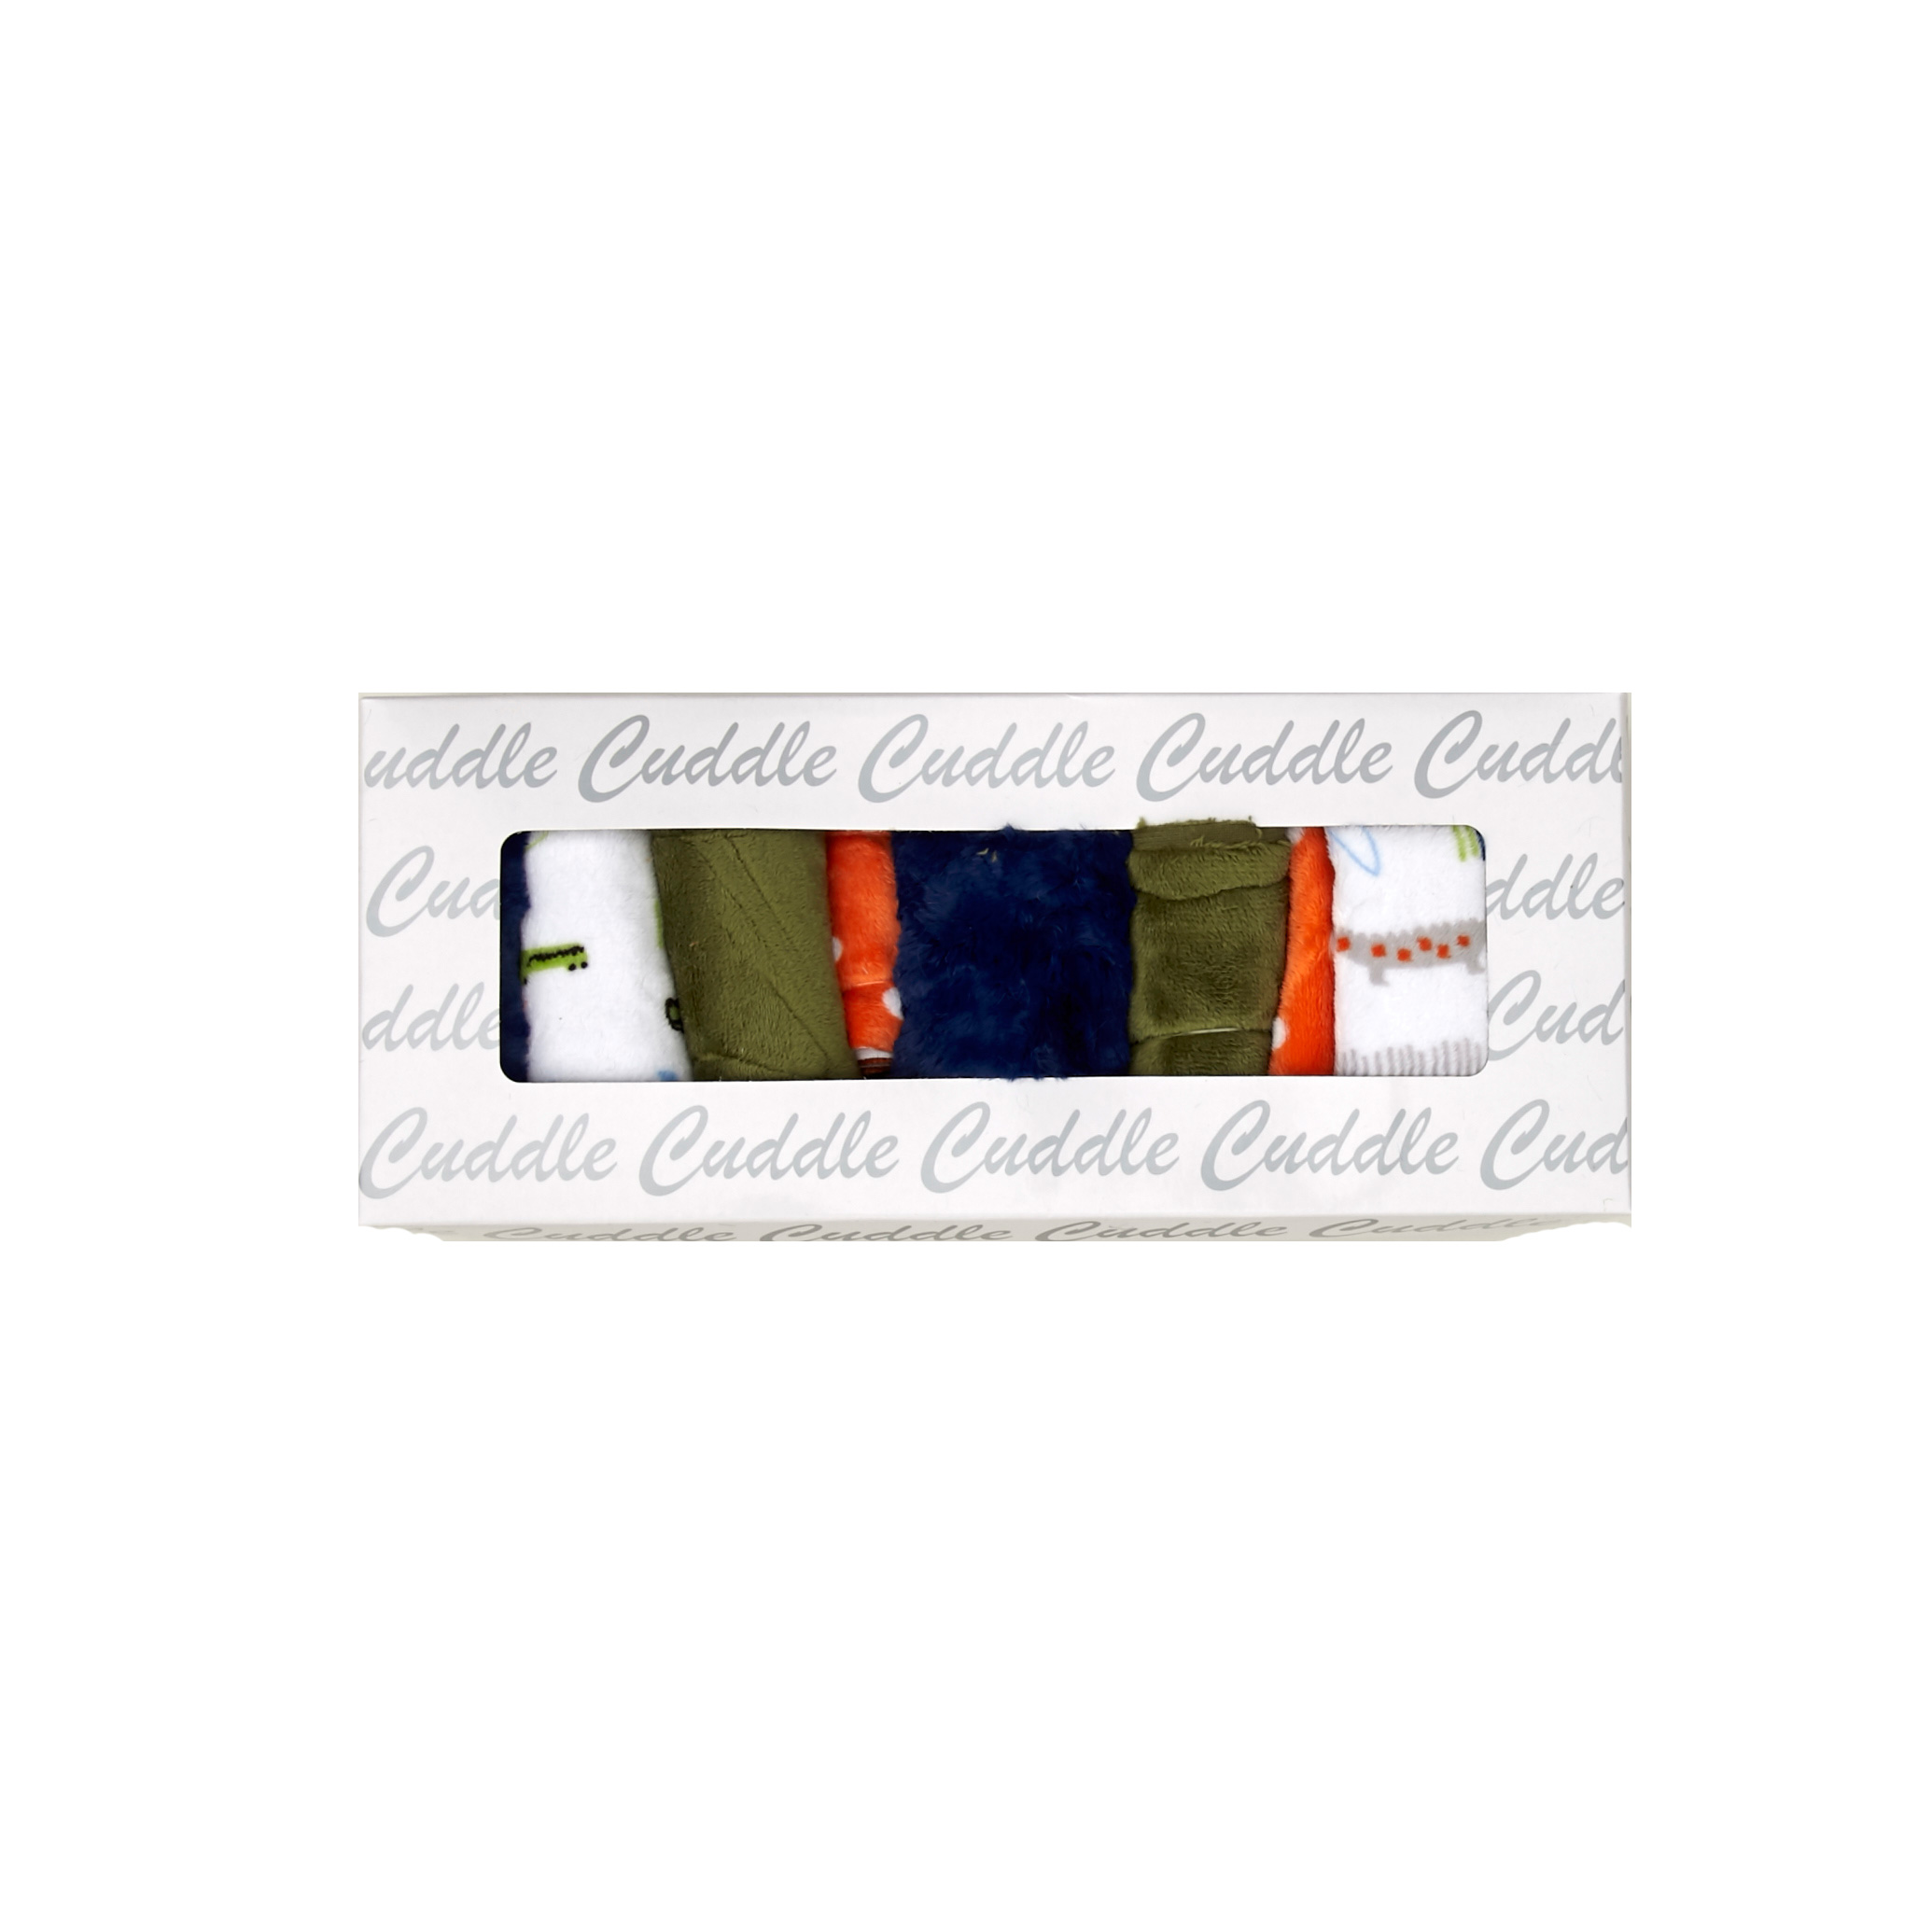 Shannon Minky Picture Perfect Cuddle Kit Crocodile Rock by Shannon in USA